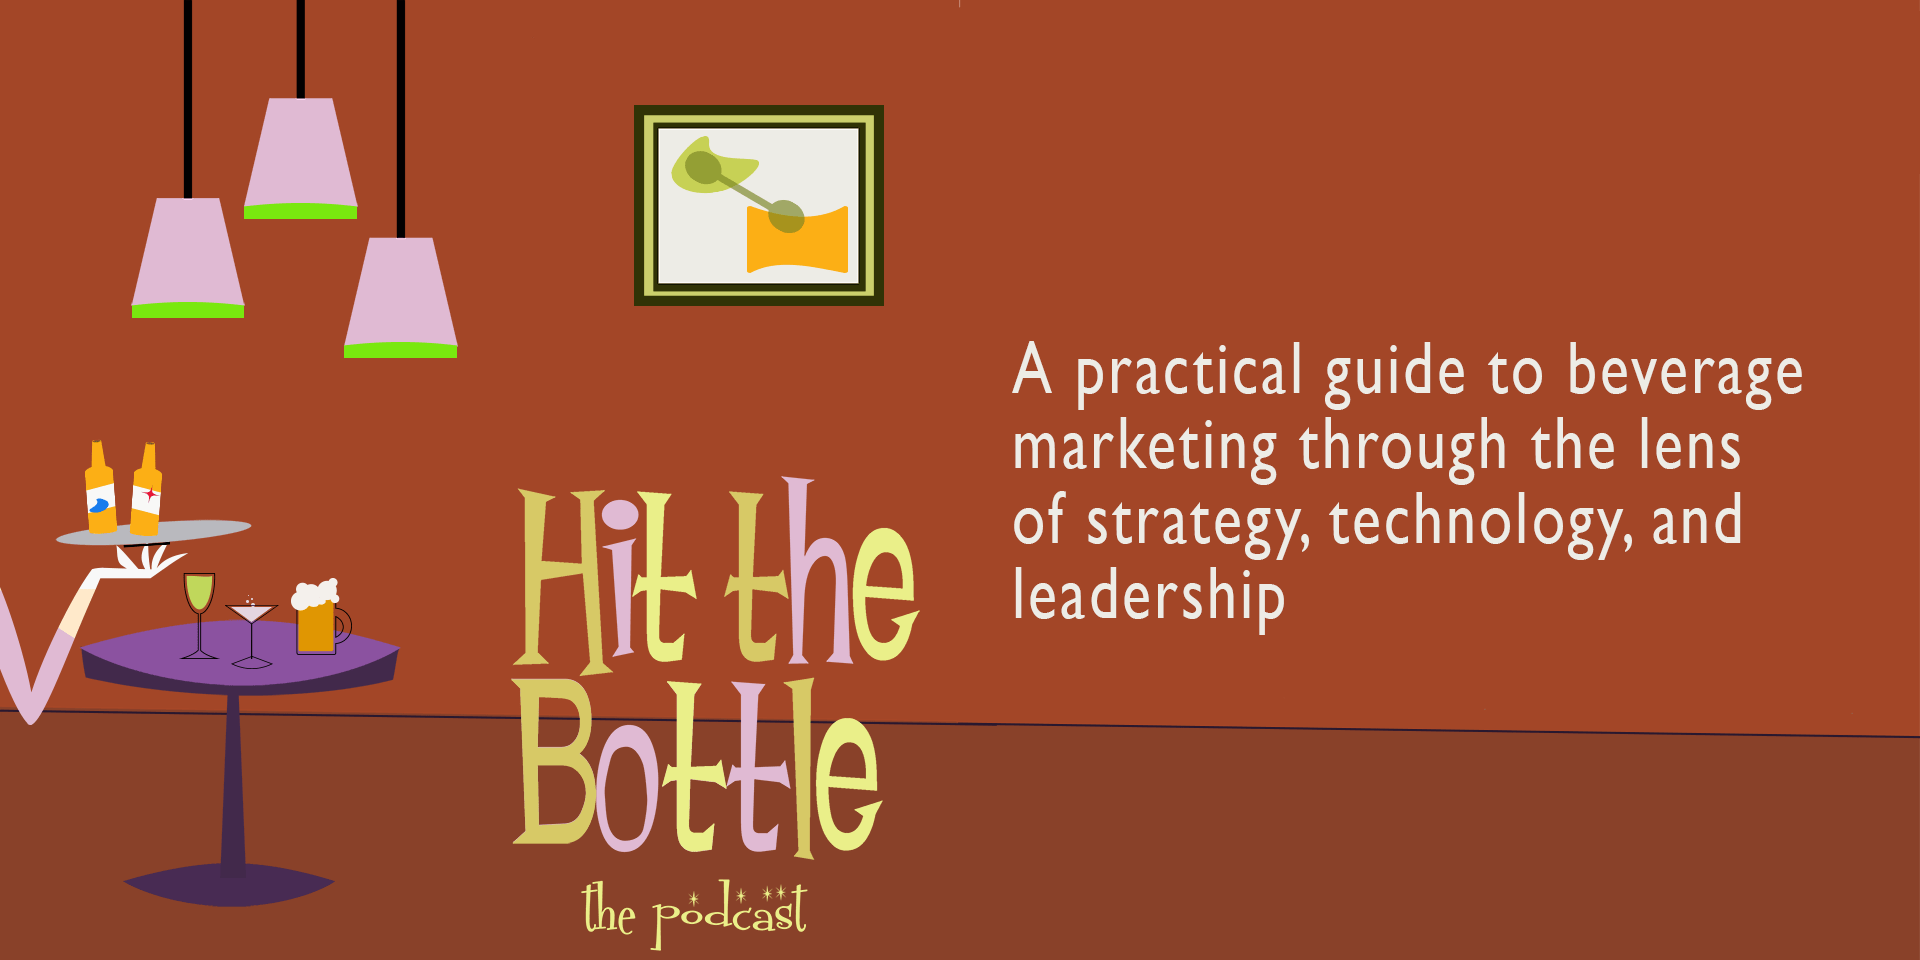 Hit the Bottle - Beverage Marketing Podcast